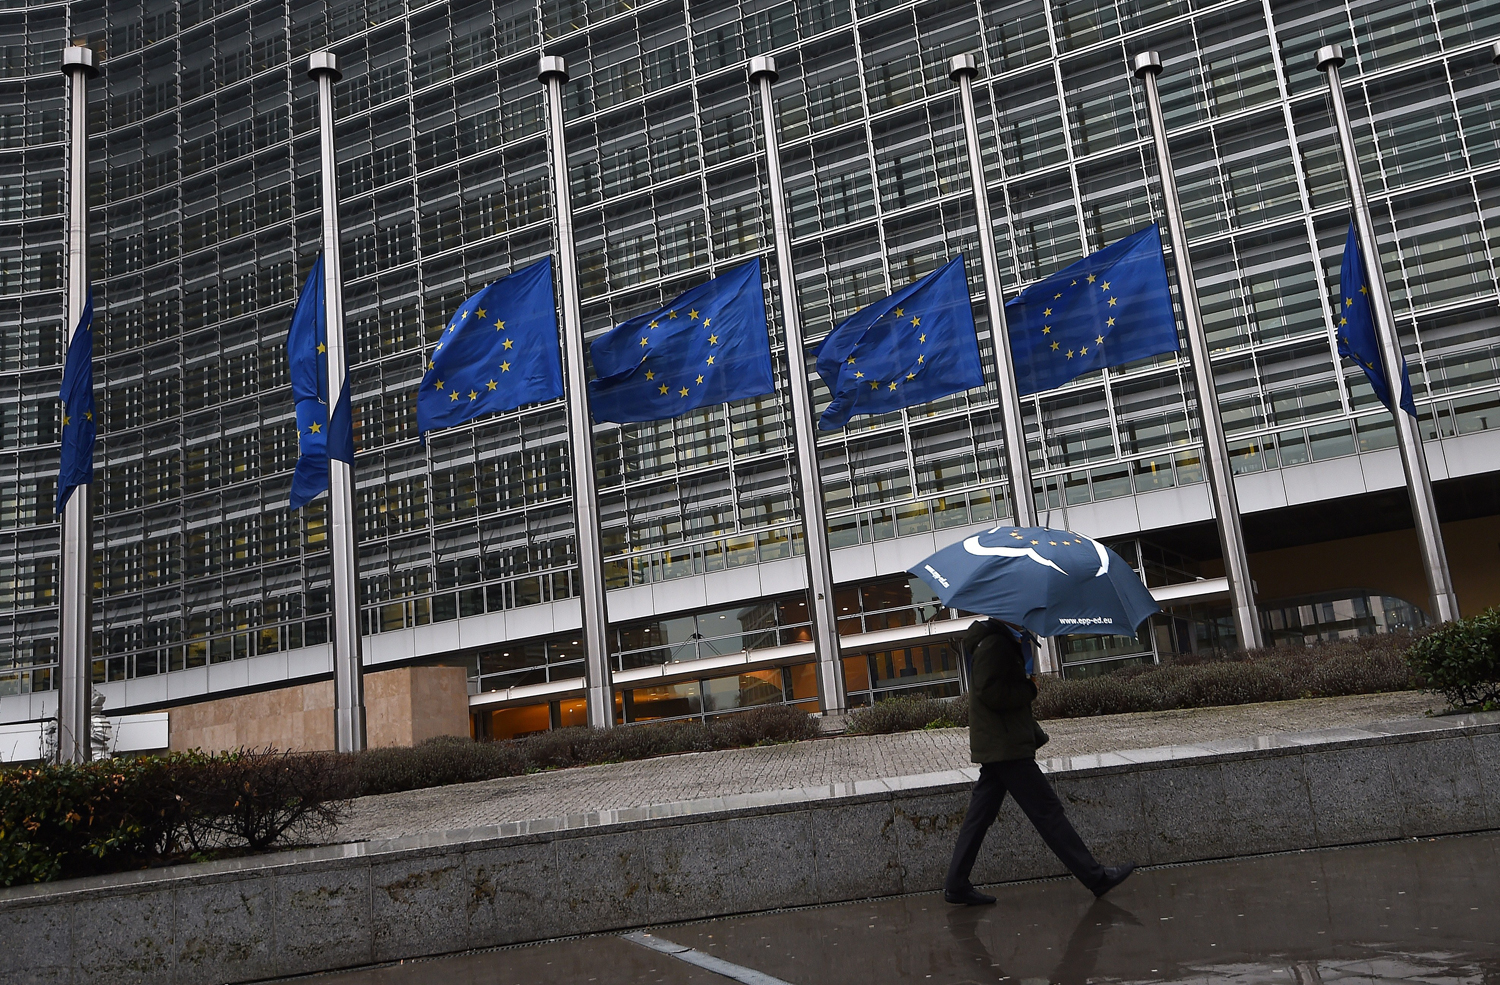 European Union flags fly at half-mast at the European Parliament in Brussels on Jan. 8, 2015, following the attack against French satirical weekly Charlie Hebdo